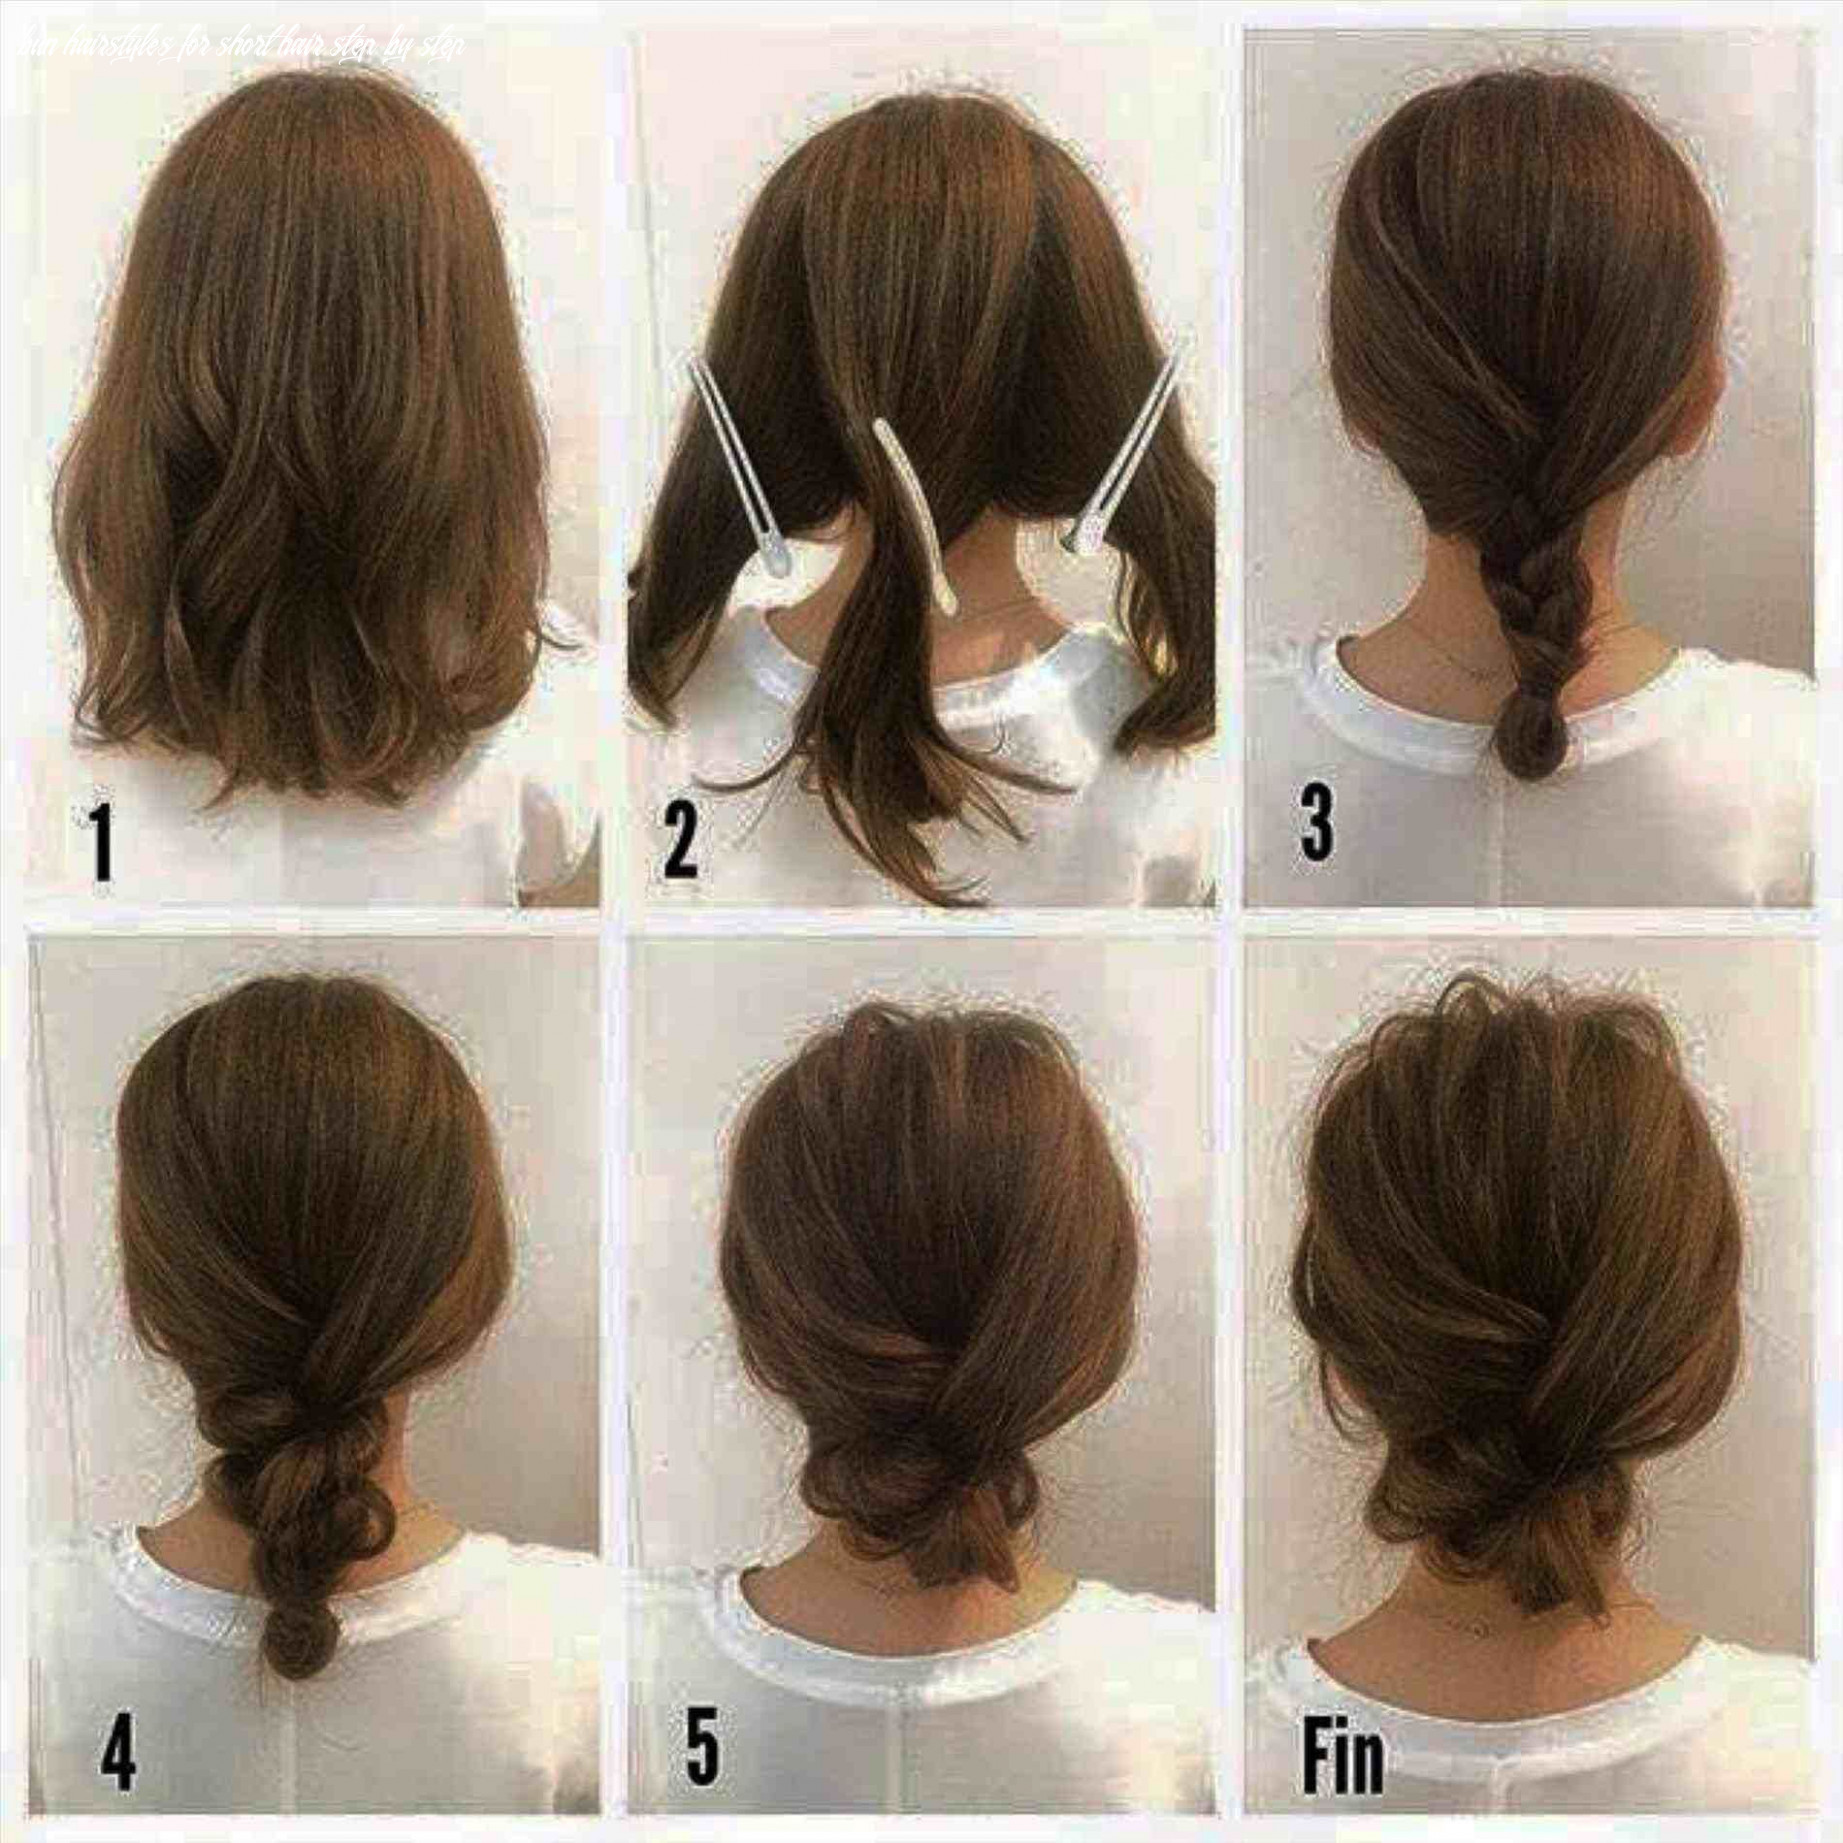 Simple bun hairstyles for long hair step by step instructions